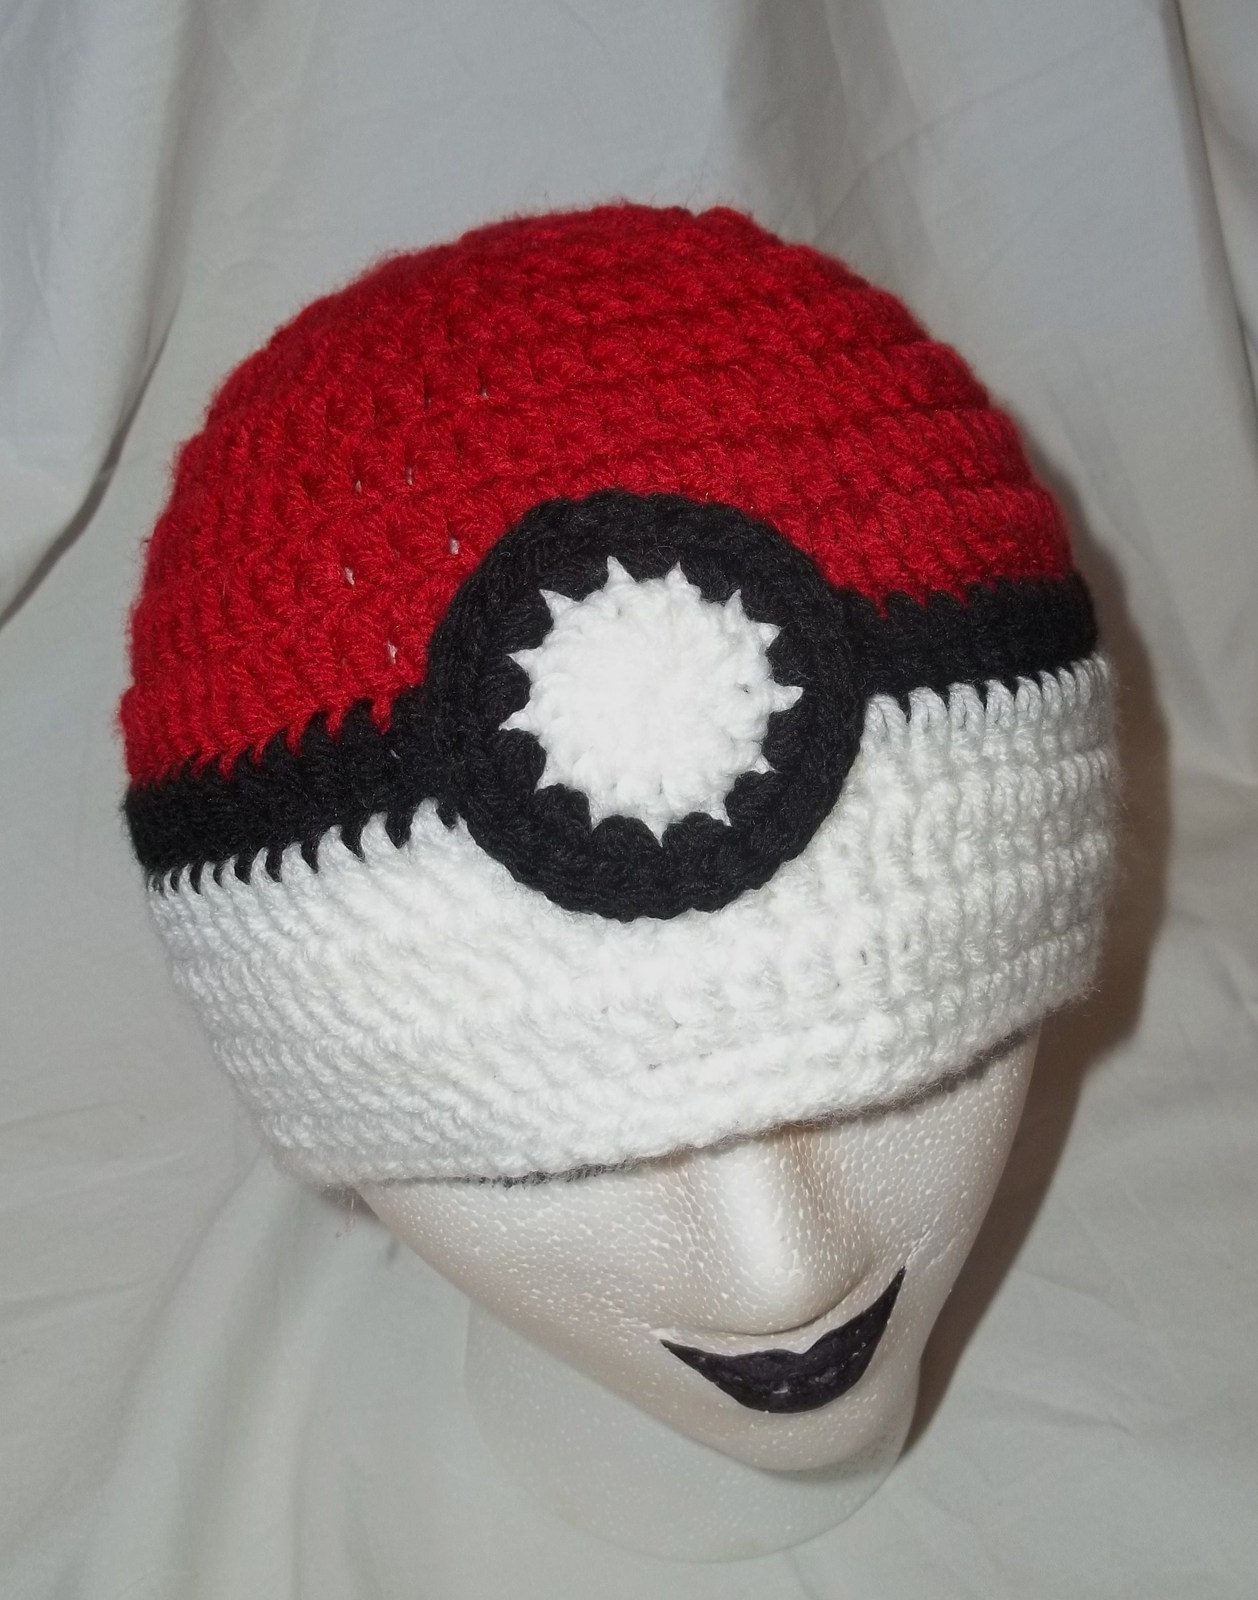 b4b1bd951d209 Pokeball Inspired Beanie . Make a character hat in under 60 minutes by  crocheting with crochet